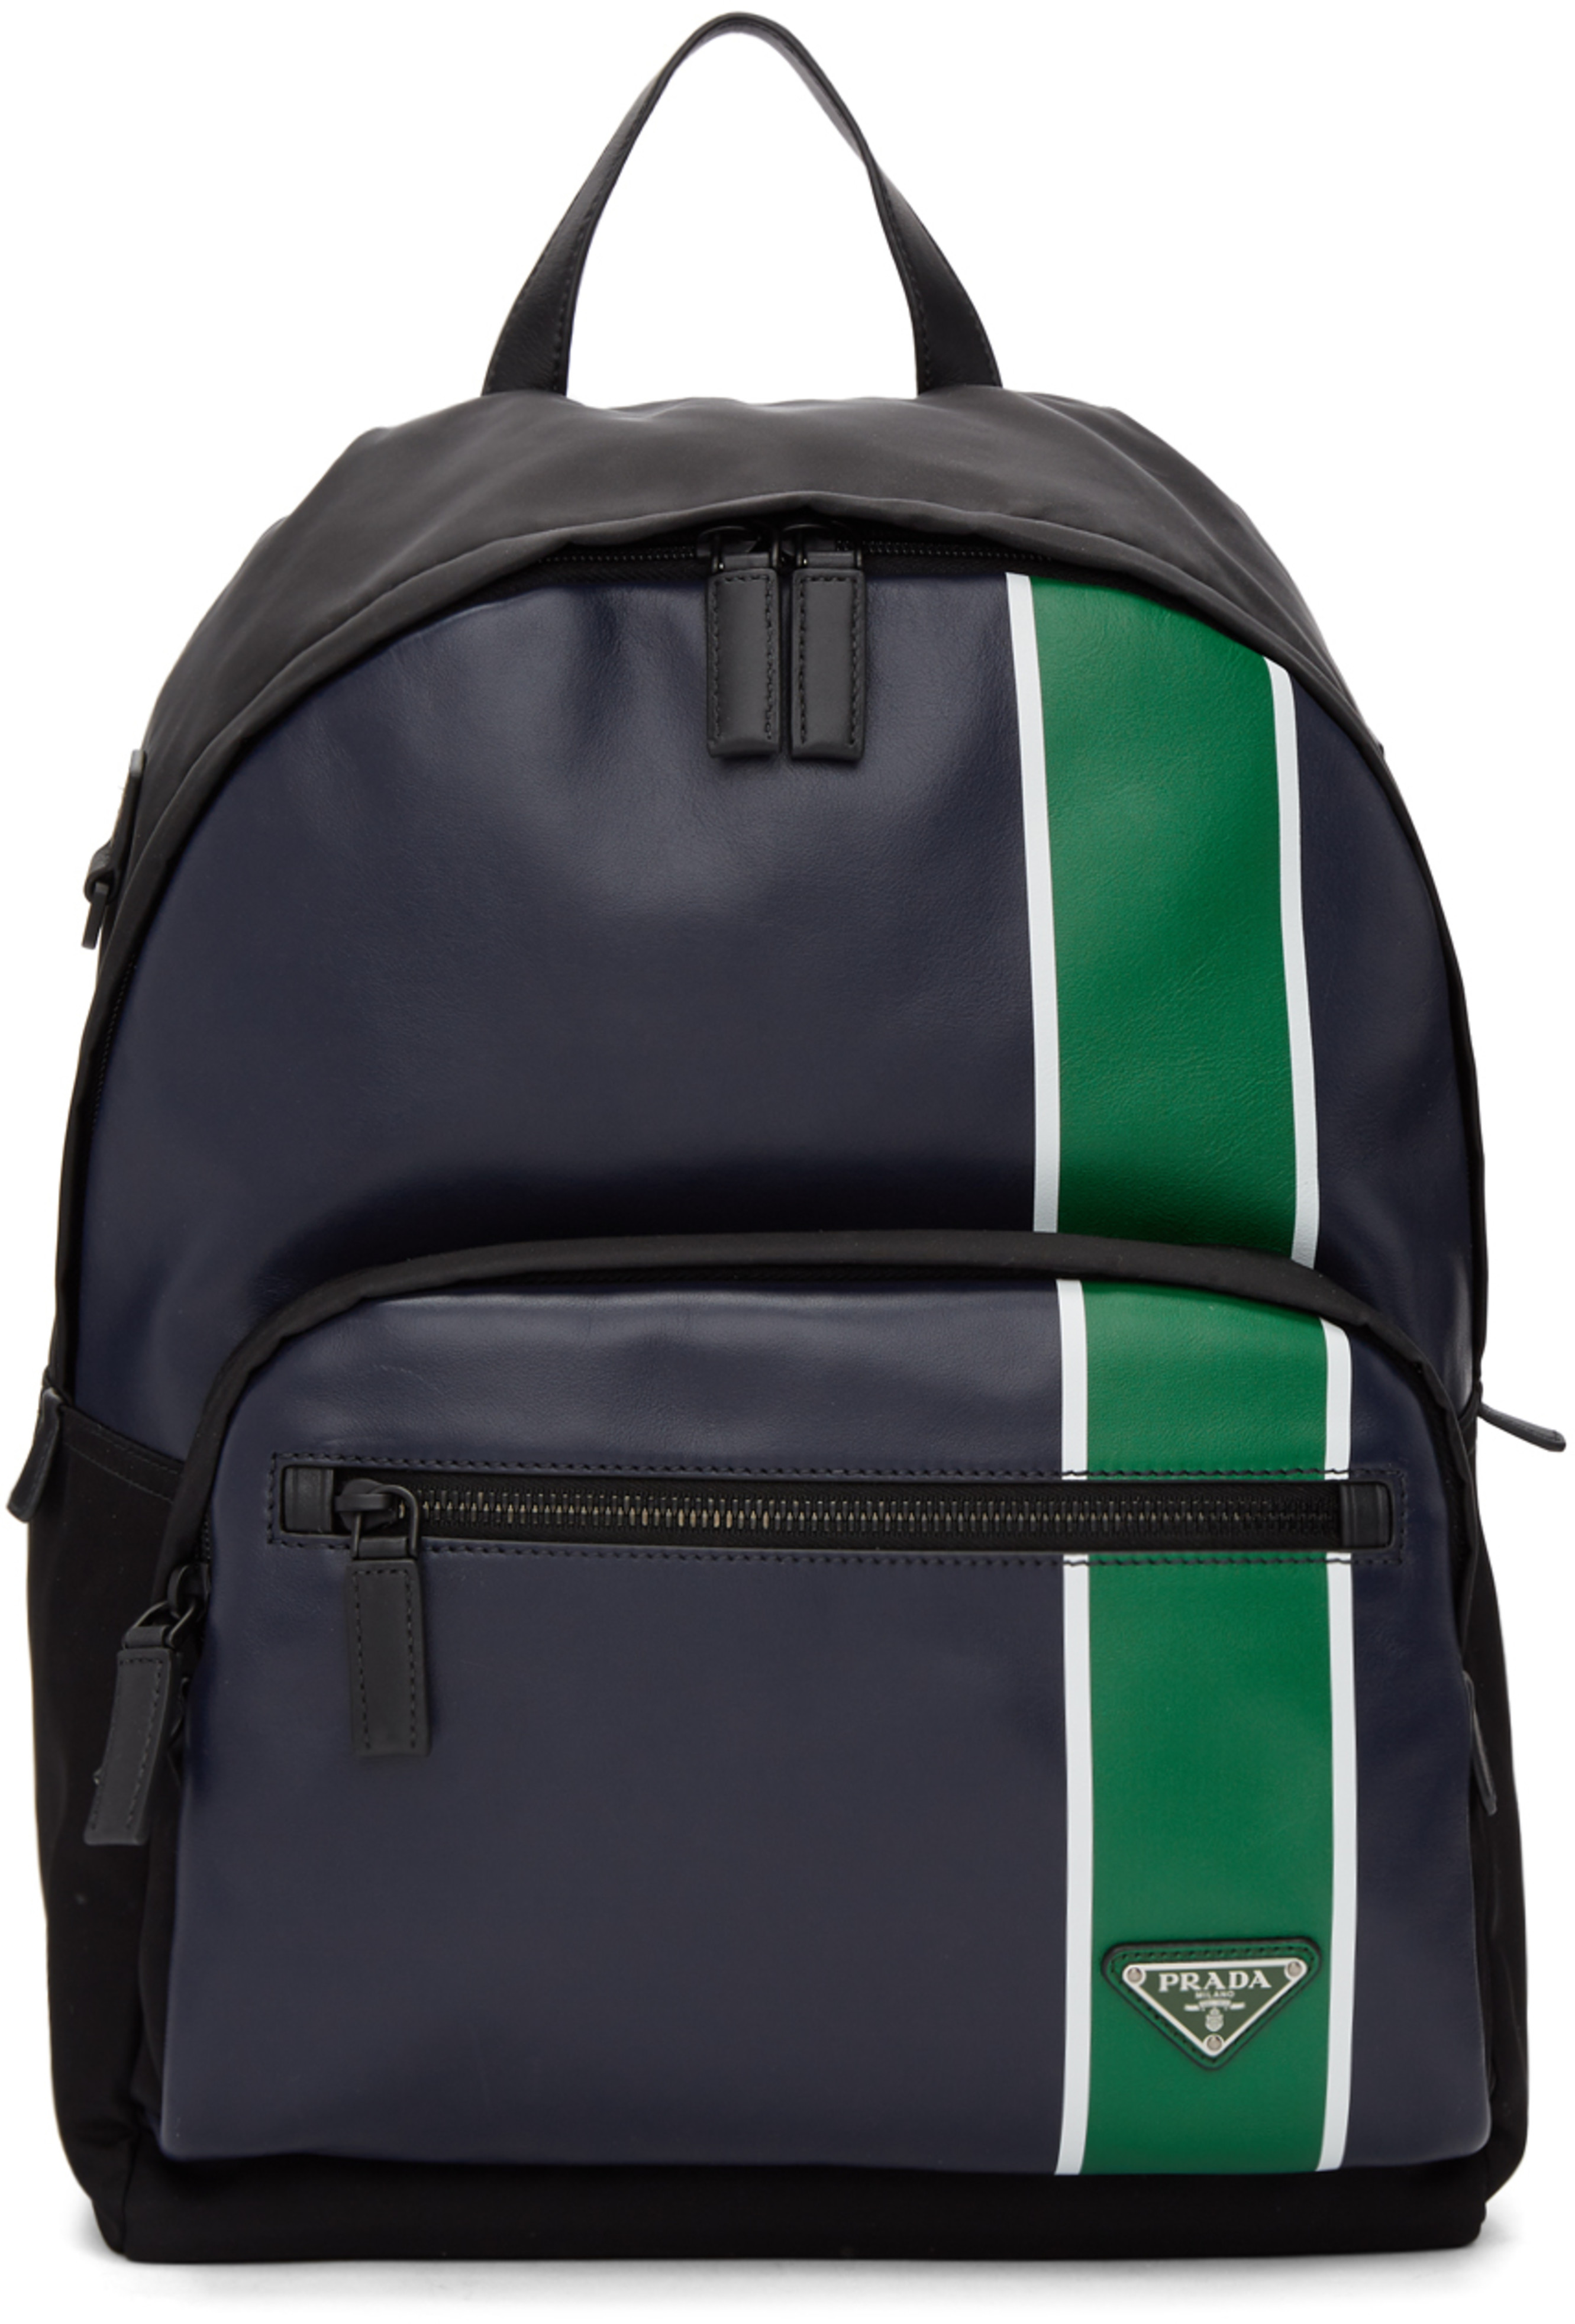 21a5e6be90a8 Navy & Green Leather Backpack